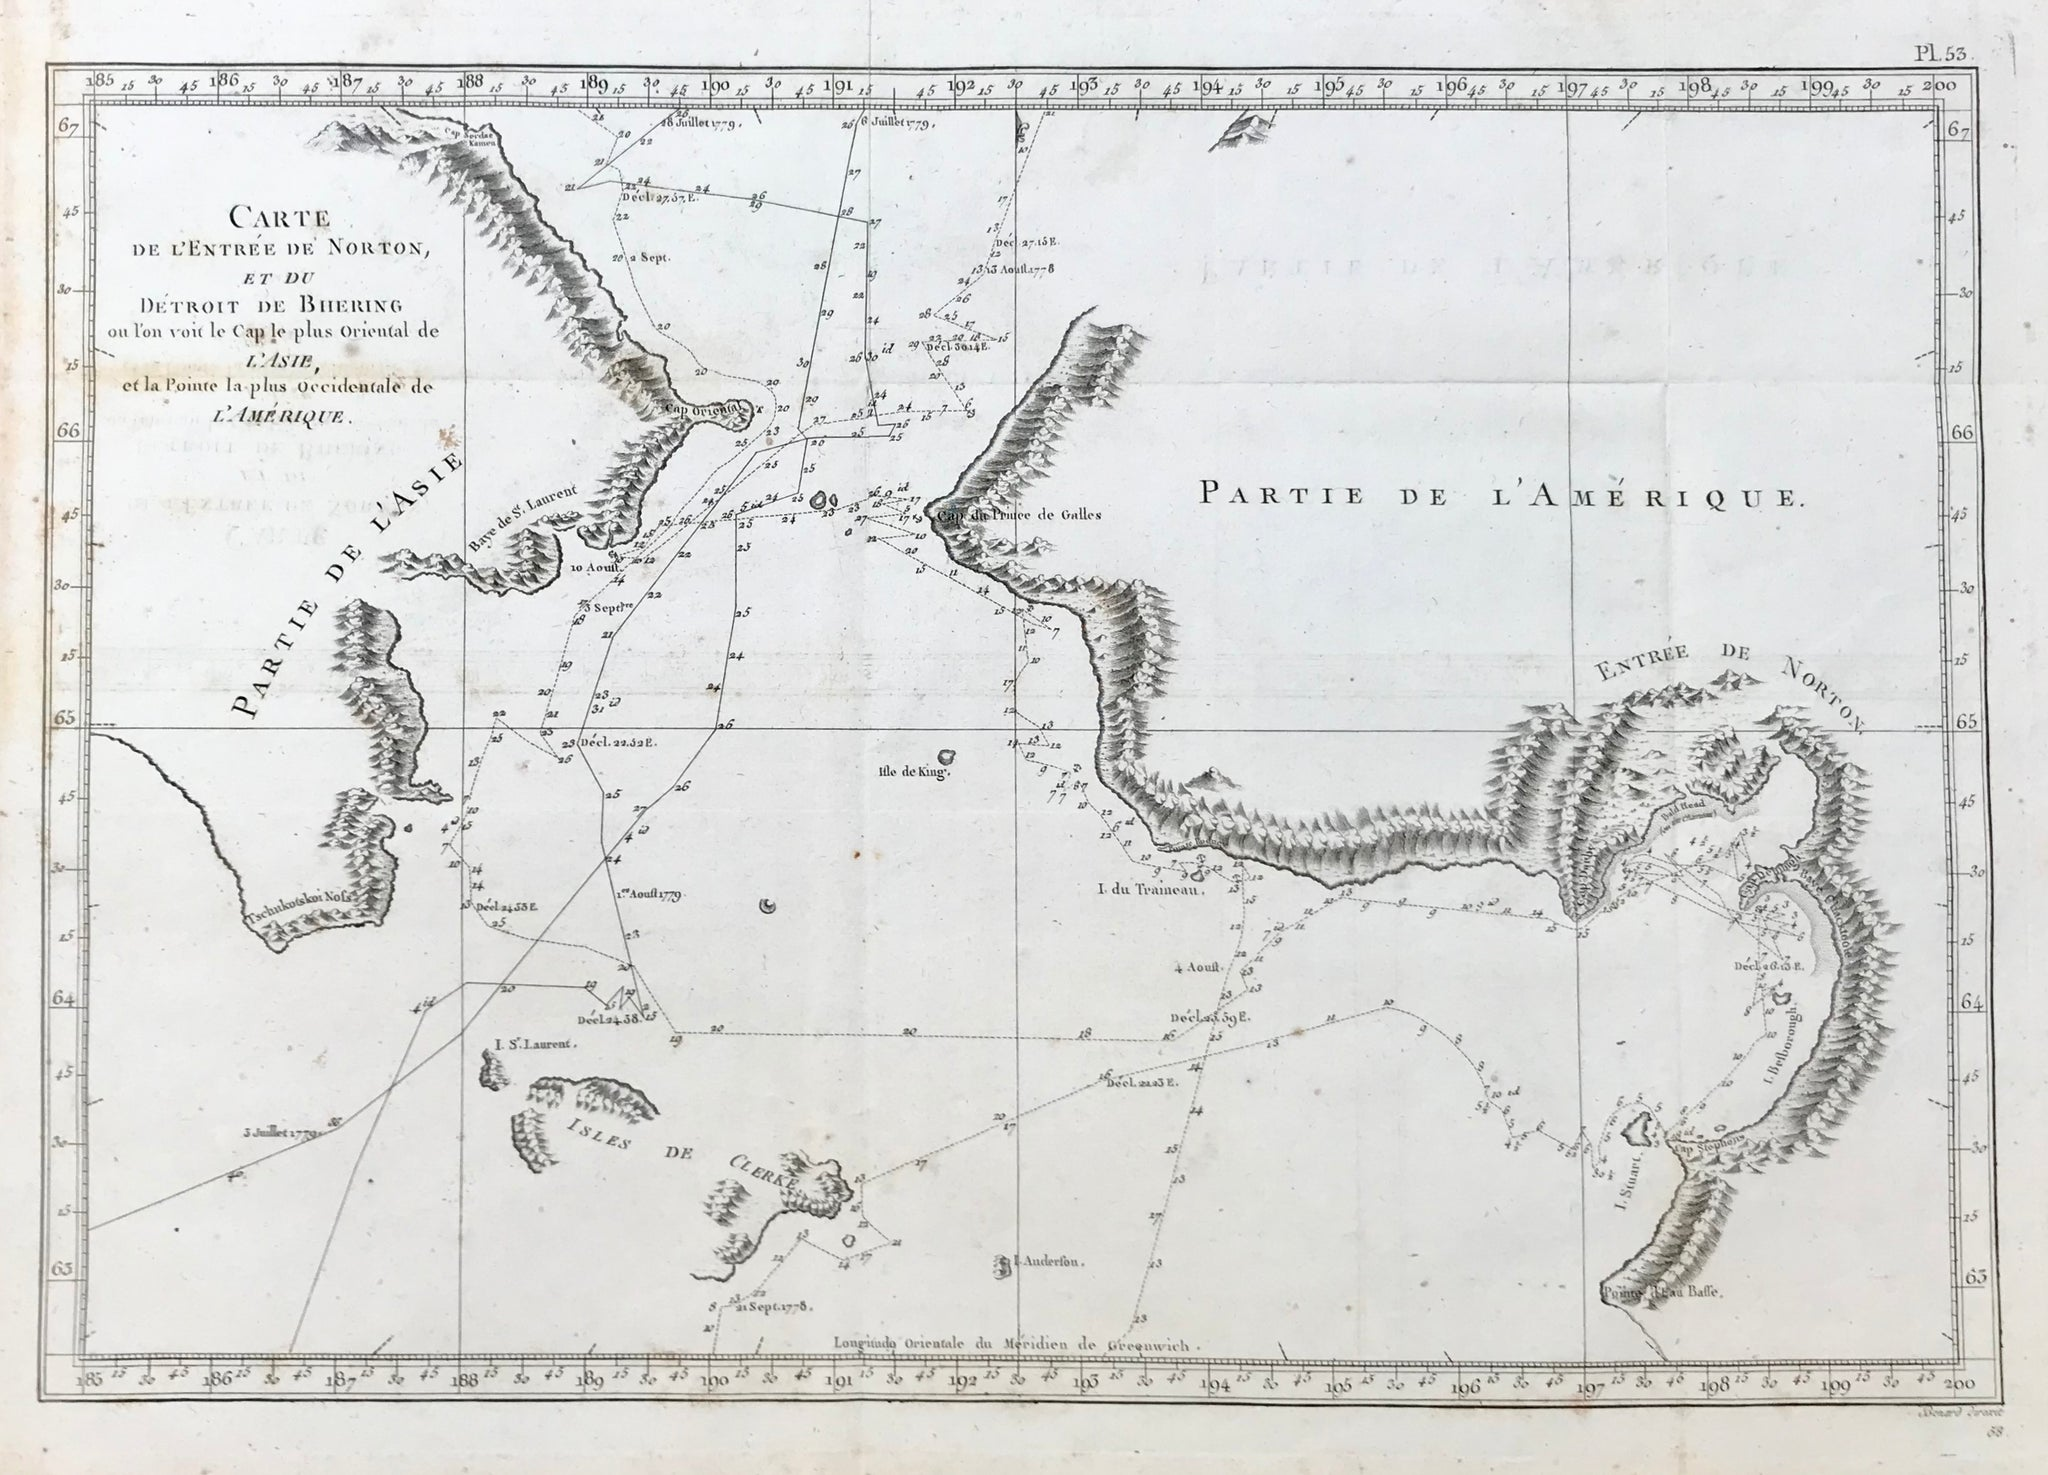 """Carte de L Entree de Norton, et du Detroit de Bhering on l on von le Cap le plus Oriental de L Asie et le Pointe la plus Occidentale de L Amerique"". Copper engraving by Benard for Rigobert Bonne 1788.  Map shows the Bering Strait from the coast south to Norton Sound to the Coast north of Cap du Prince du Galles. The lines show the voyages of Captain Cook in 1778 and 1779.  Map has original folds to fit book size. A few minor spots.  26.5 x 38.5 cm ( 10.4 x 15.1 "")"